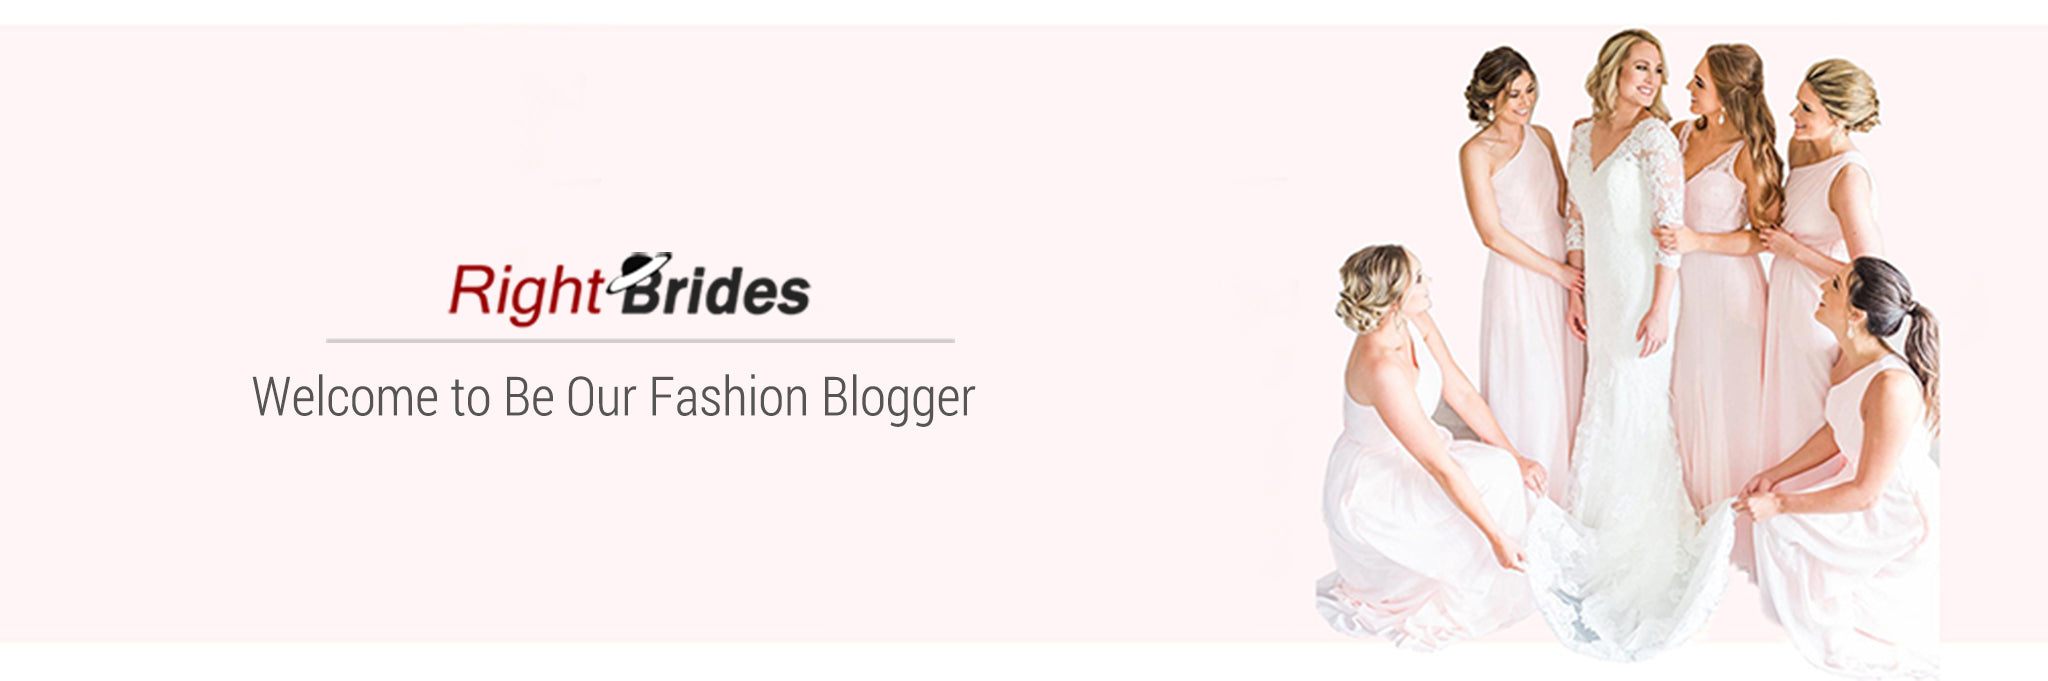 welcome to be RightBrides fashion blogger